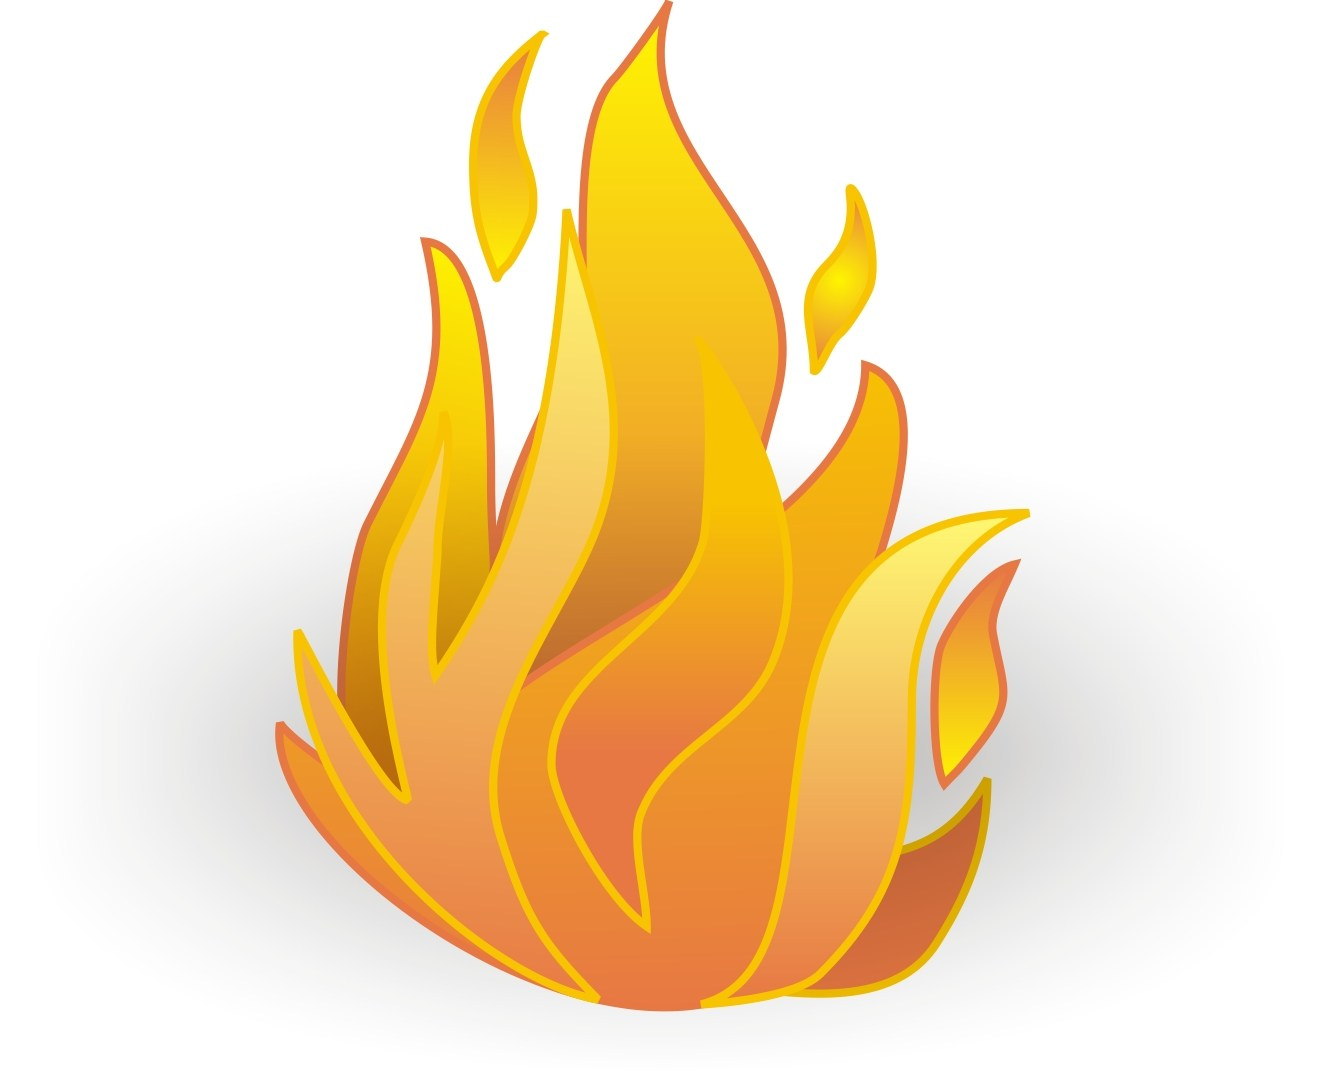 Cartoon flames clipart 3 » Clipart Portal.